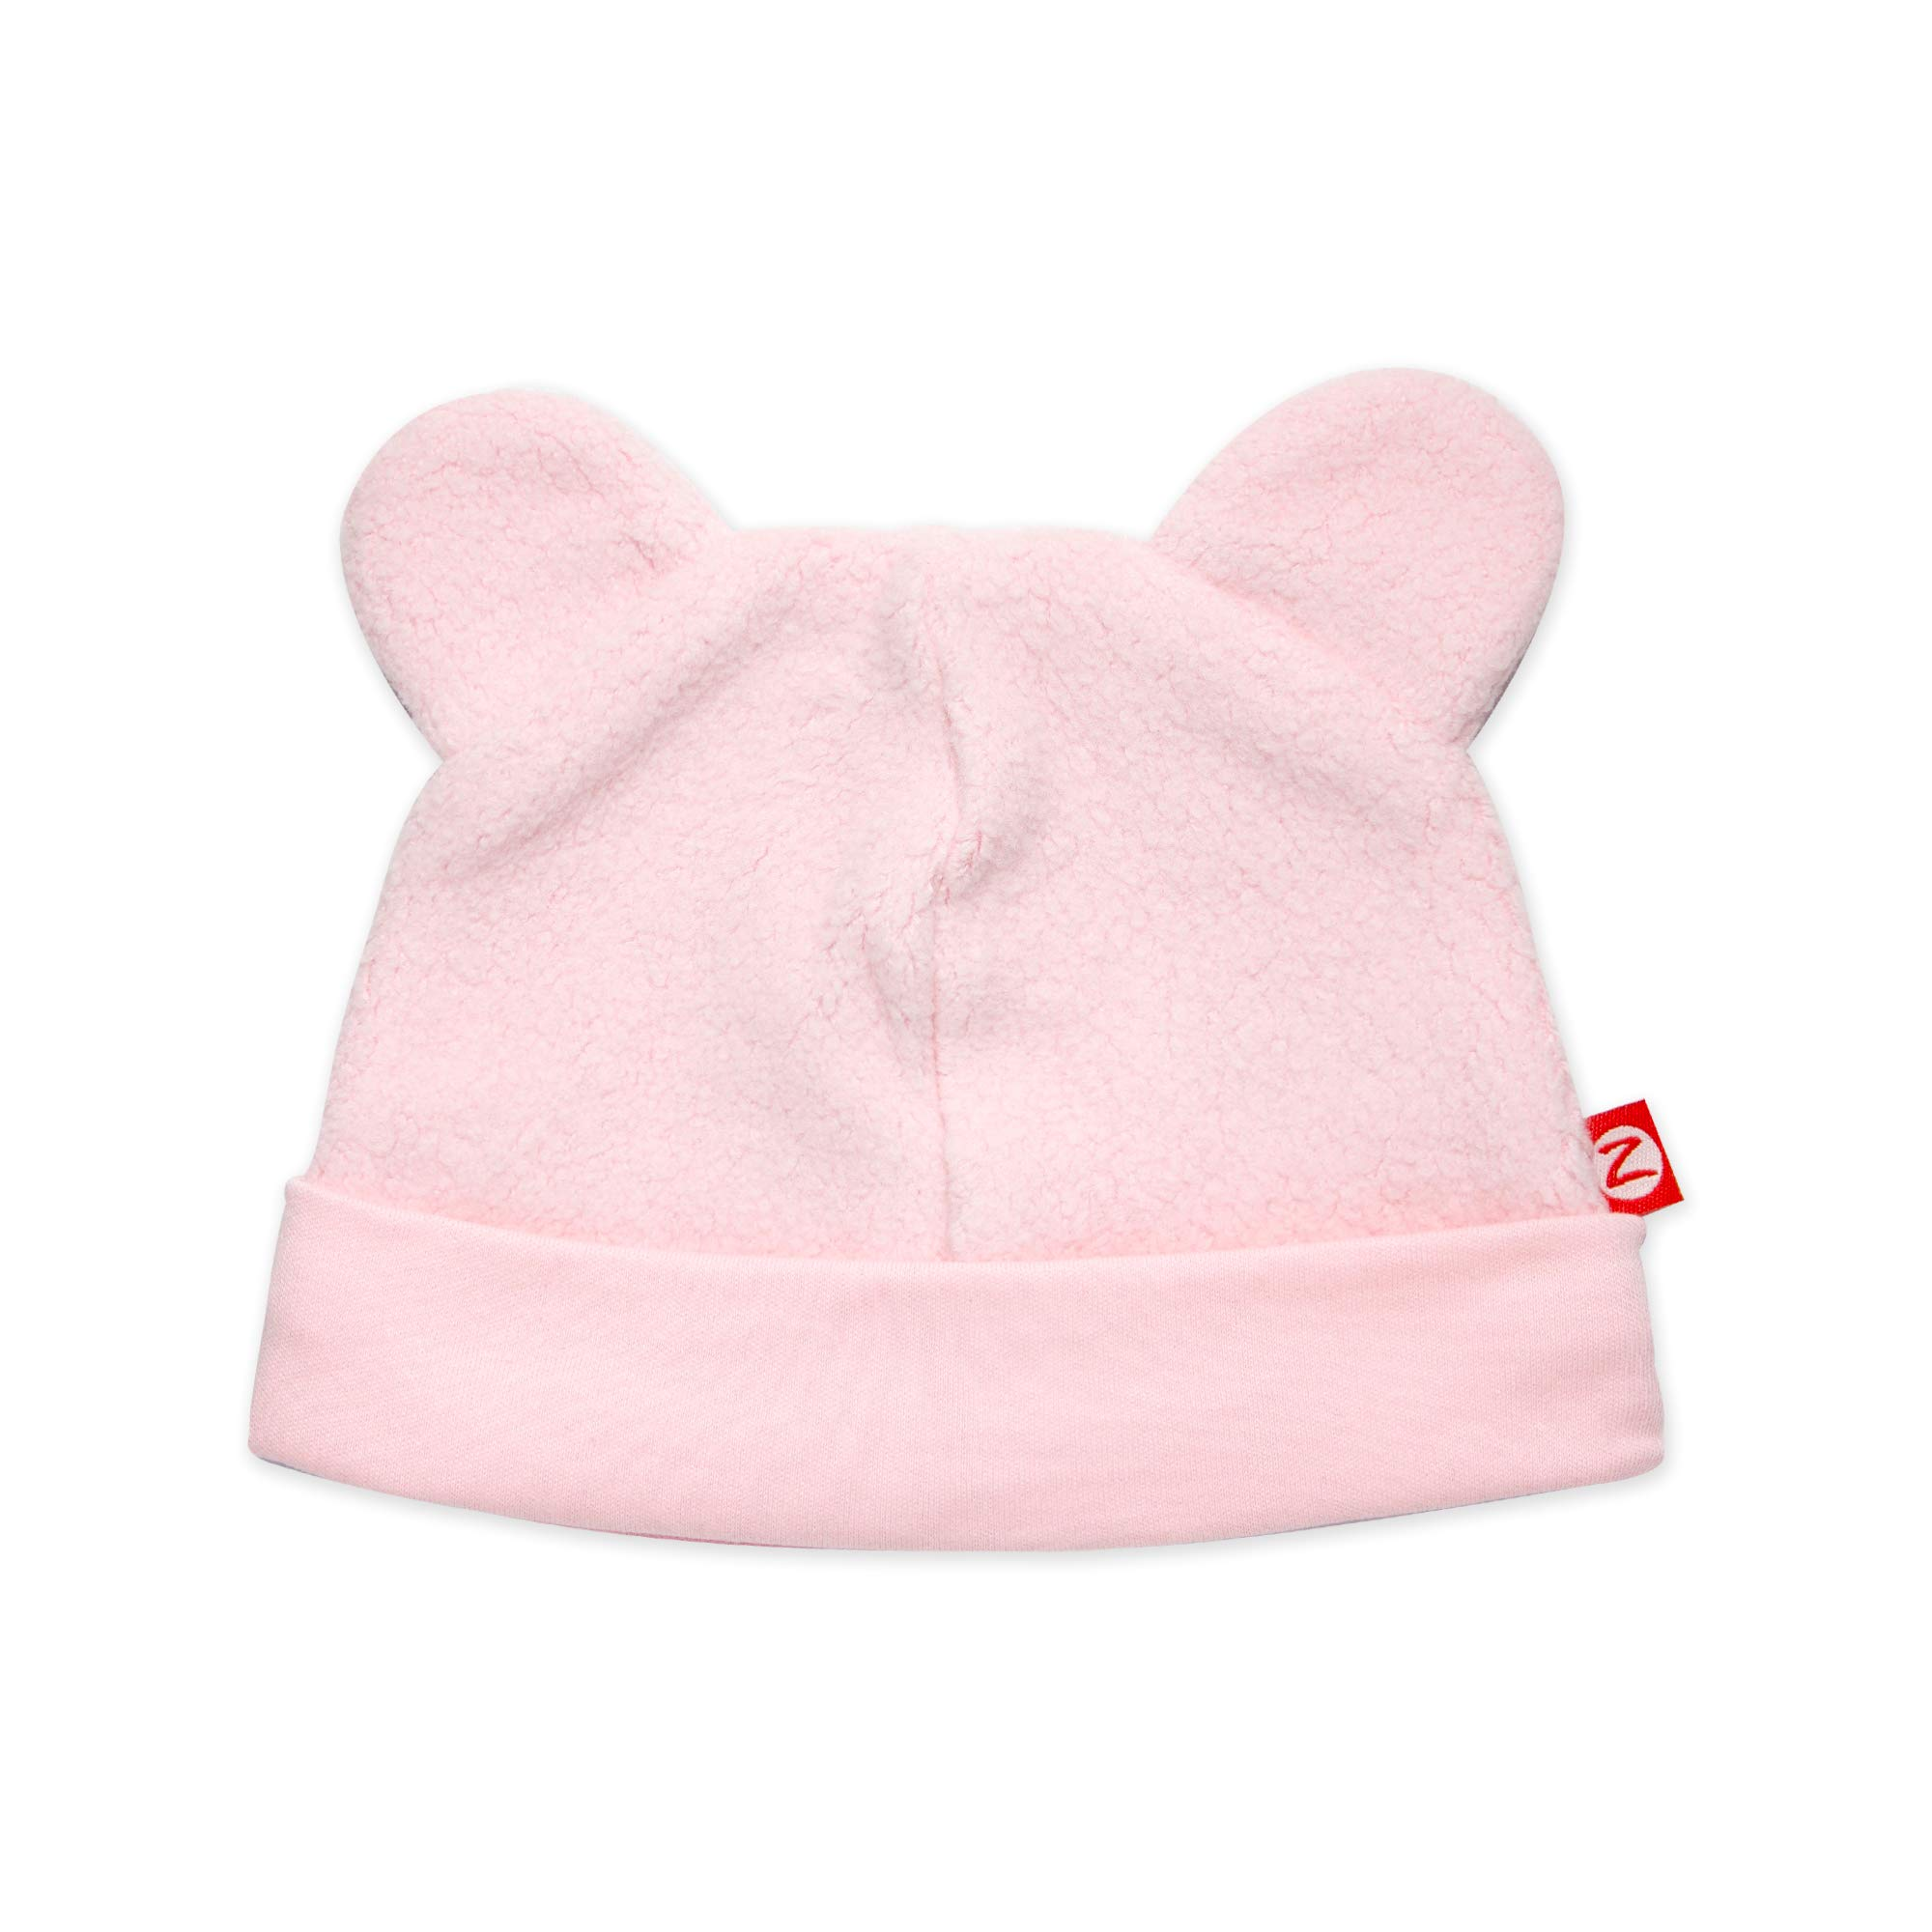 Zutano Cozie Baby Fleece Hat, Unisex, for Newborns, Infants, Babies, and Toddlers, Baby Pink, 0M-3M by Zutano